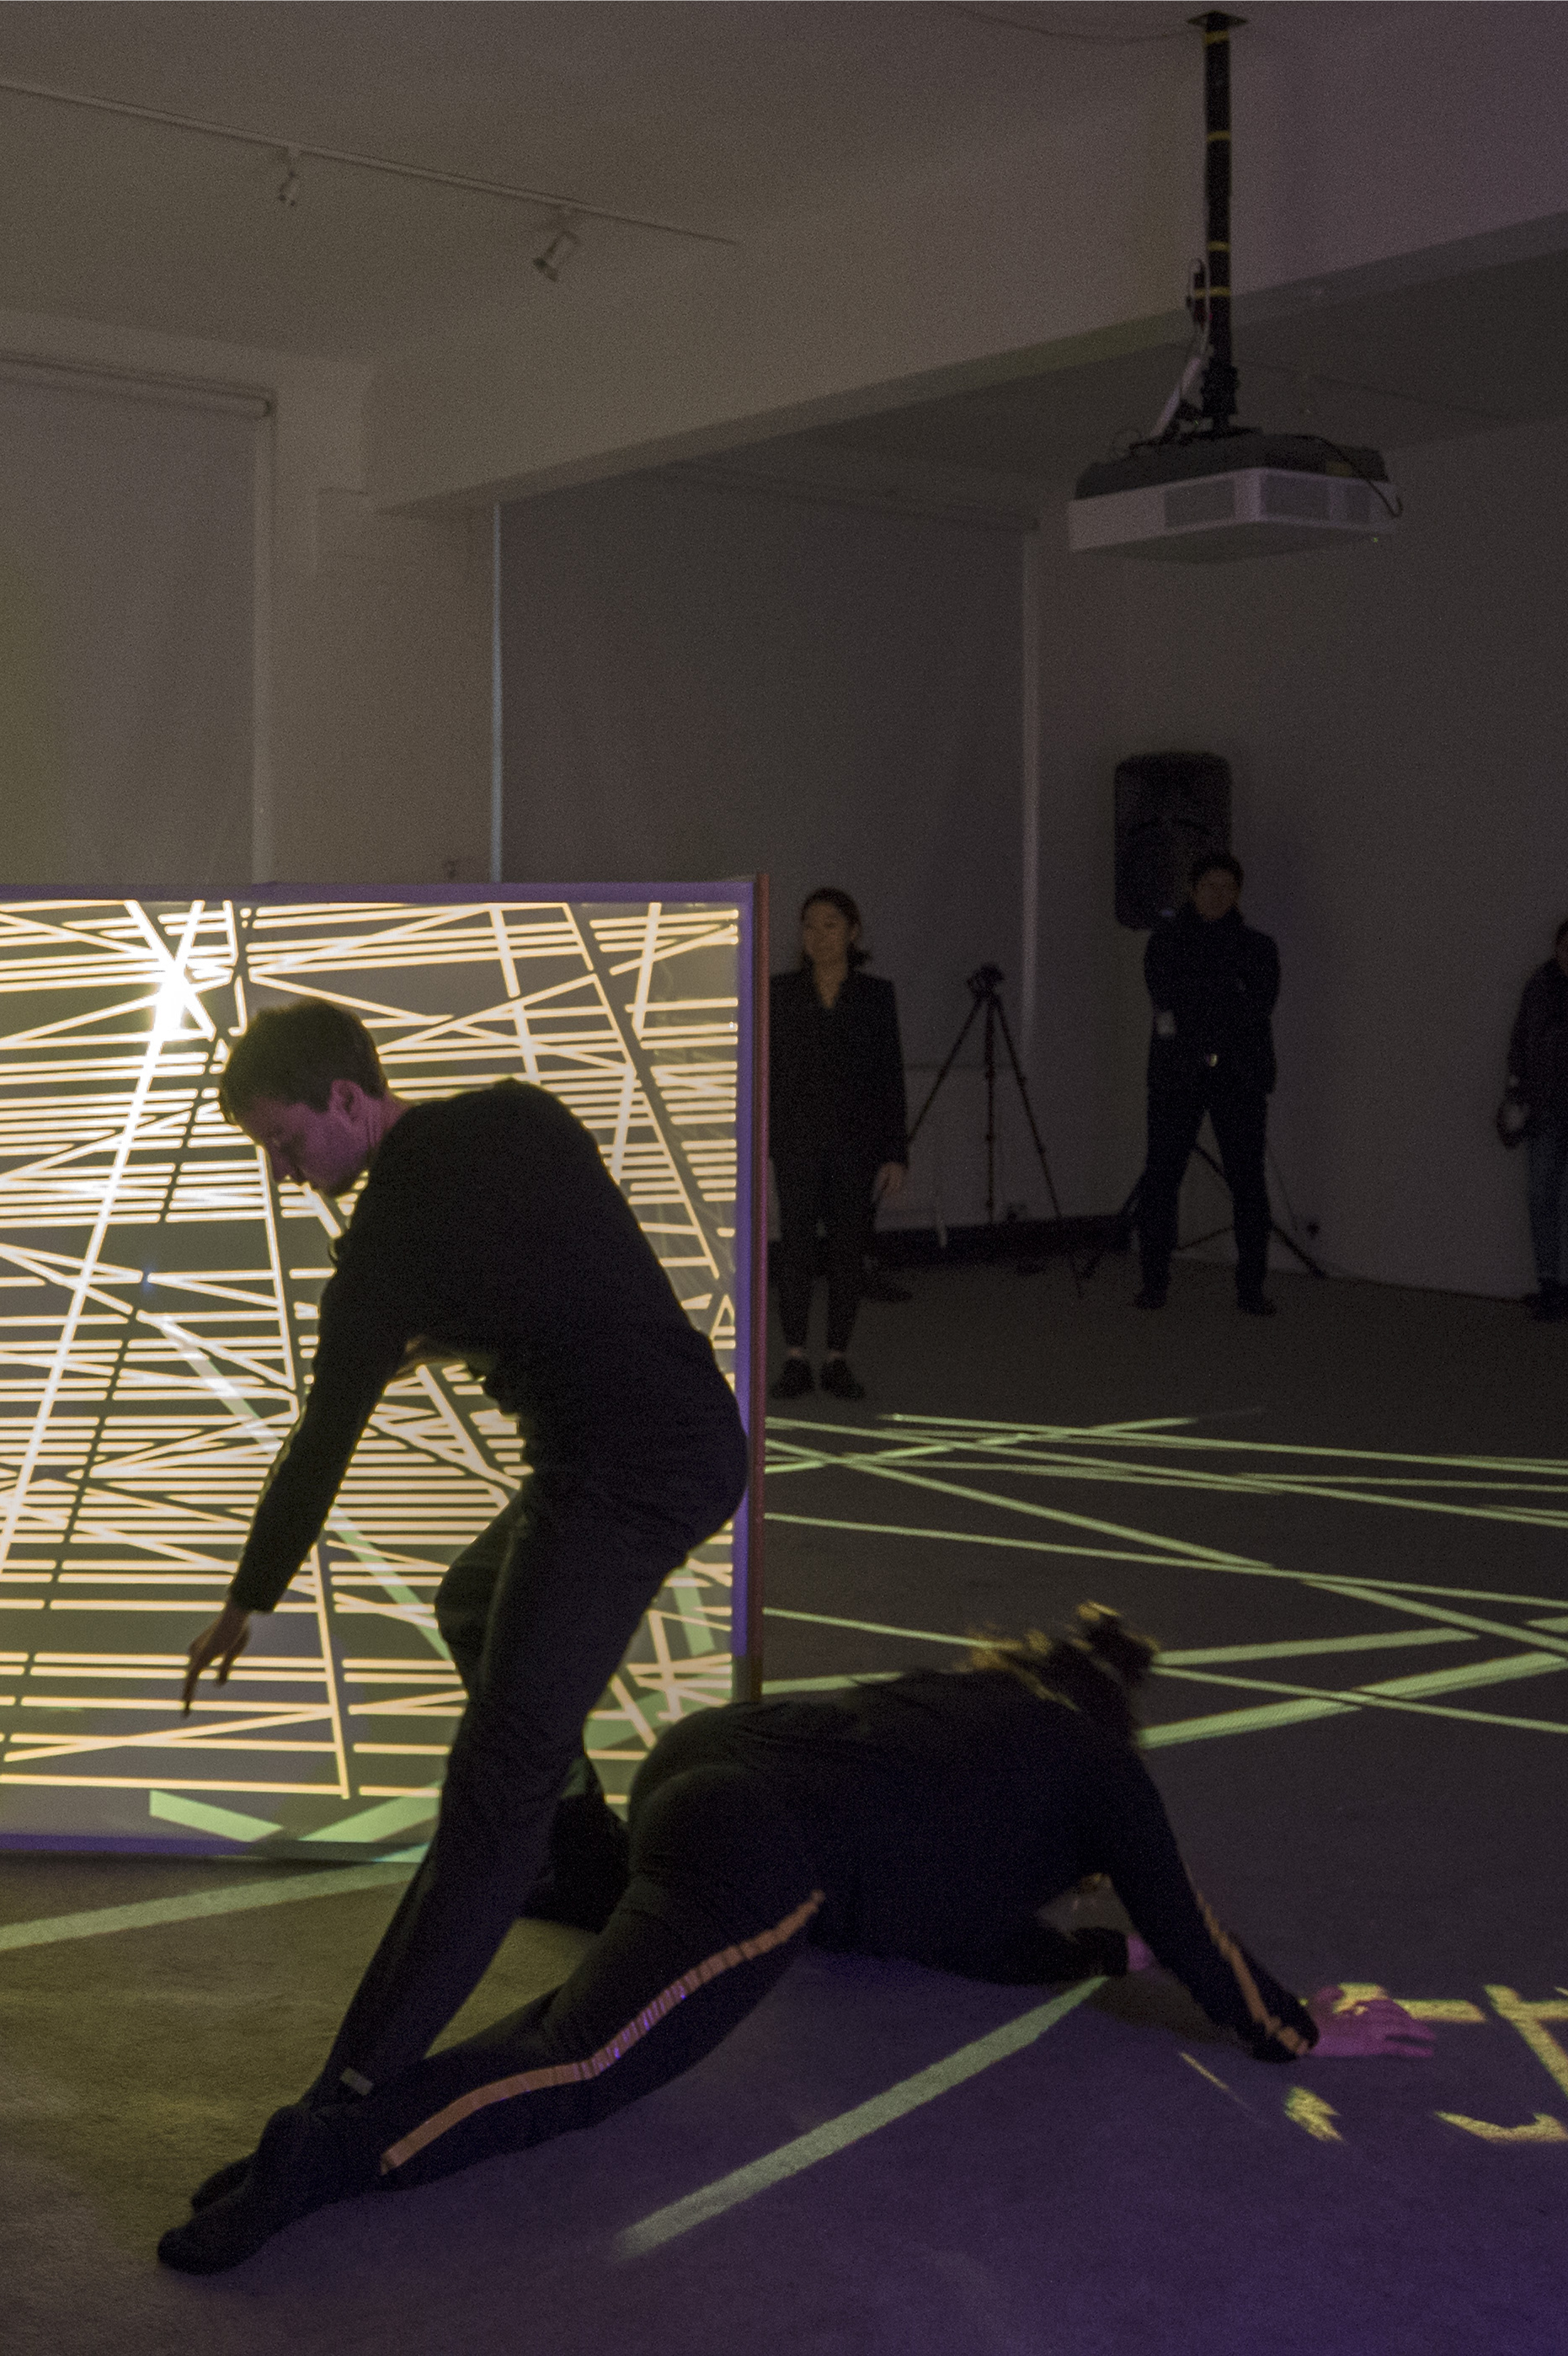 A sequence of duets explore different relationships between bodies and spatial geometries. -